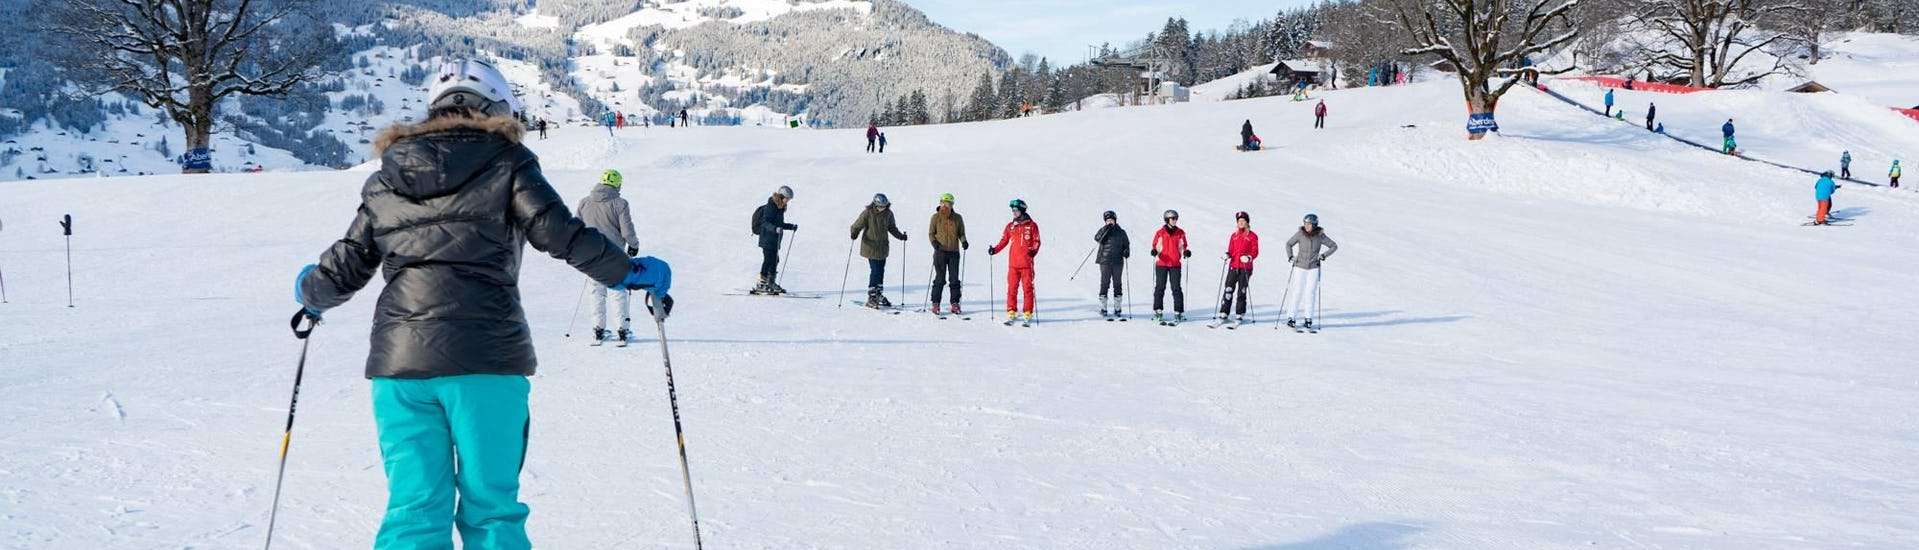 ski-lessons-beginner-package-first-timers-outdoor-interlaken2